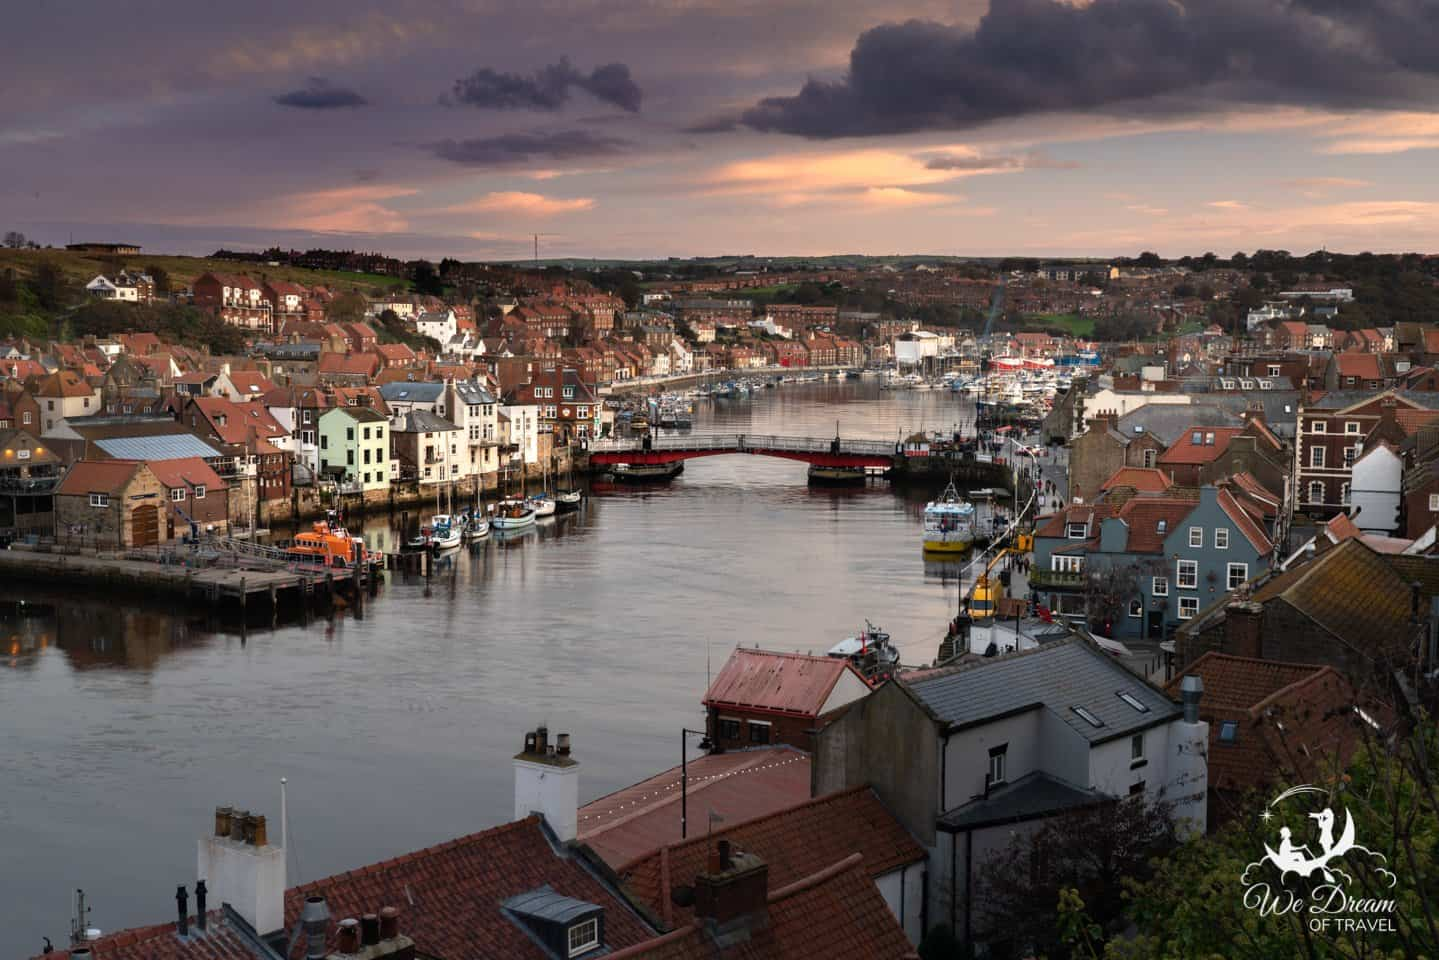 Sunset over Whitby town and harbour from East Terrace.